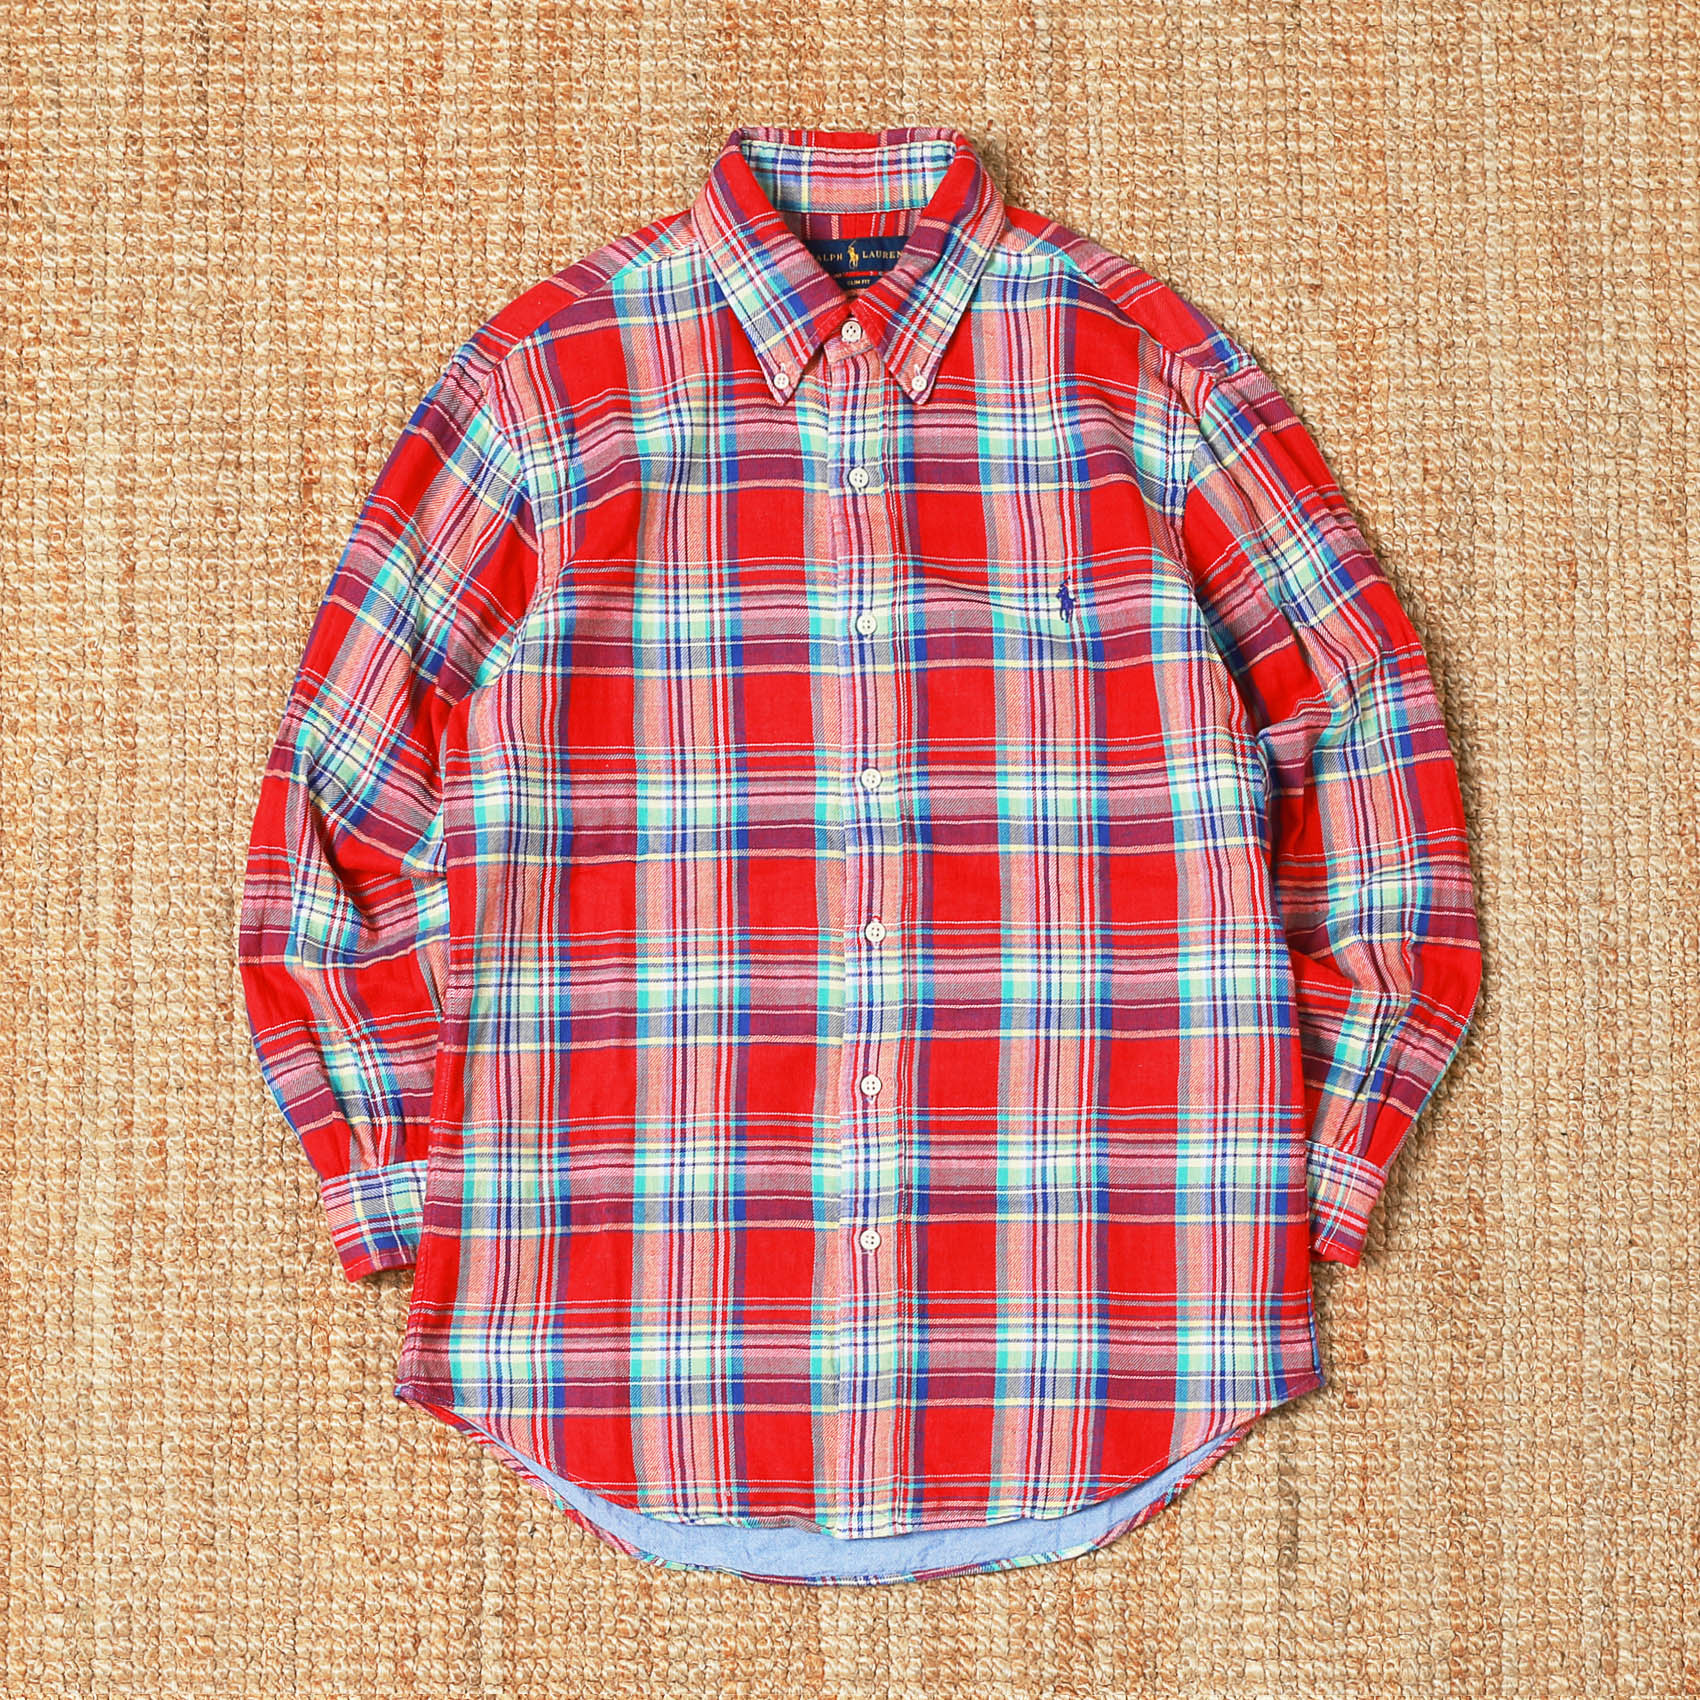 POLO RALPH LAUREN CHECK SHIRTS - RED